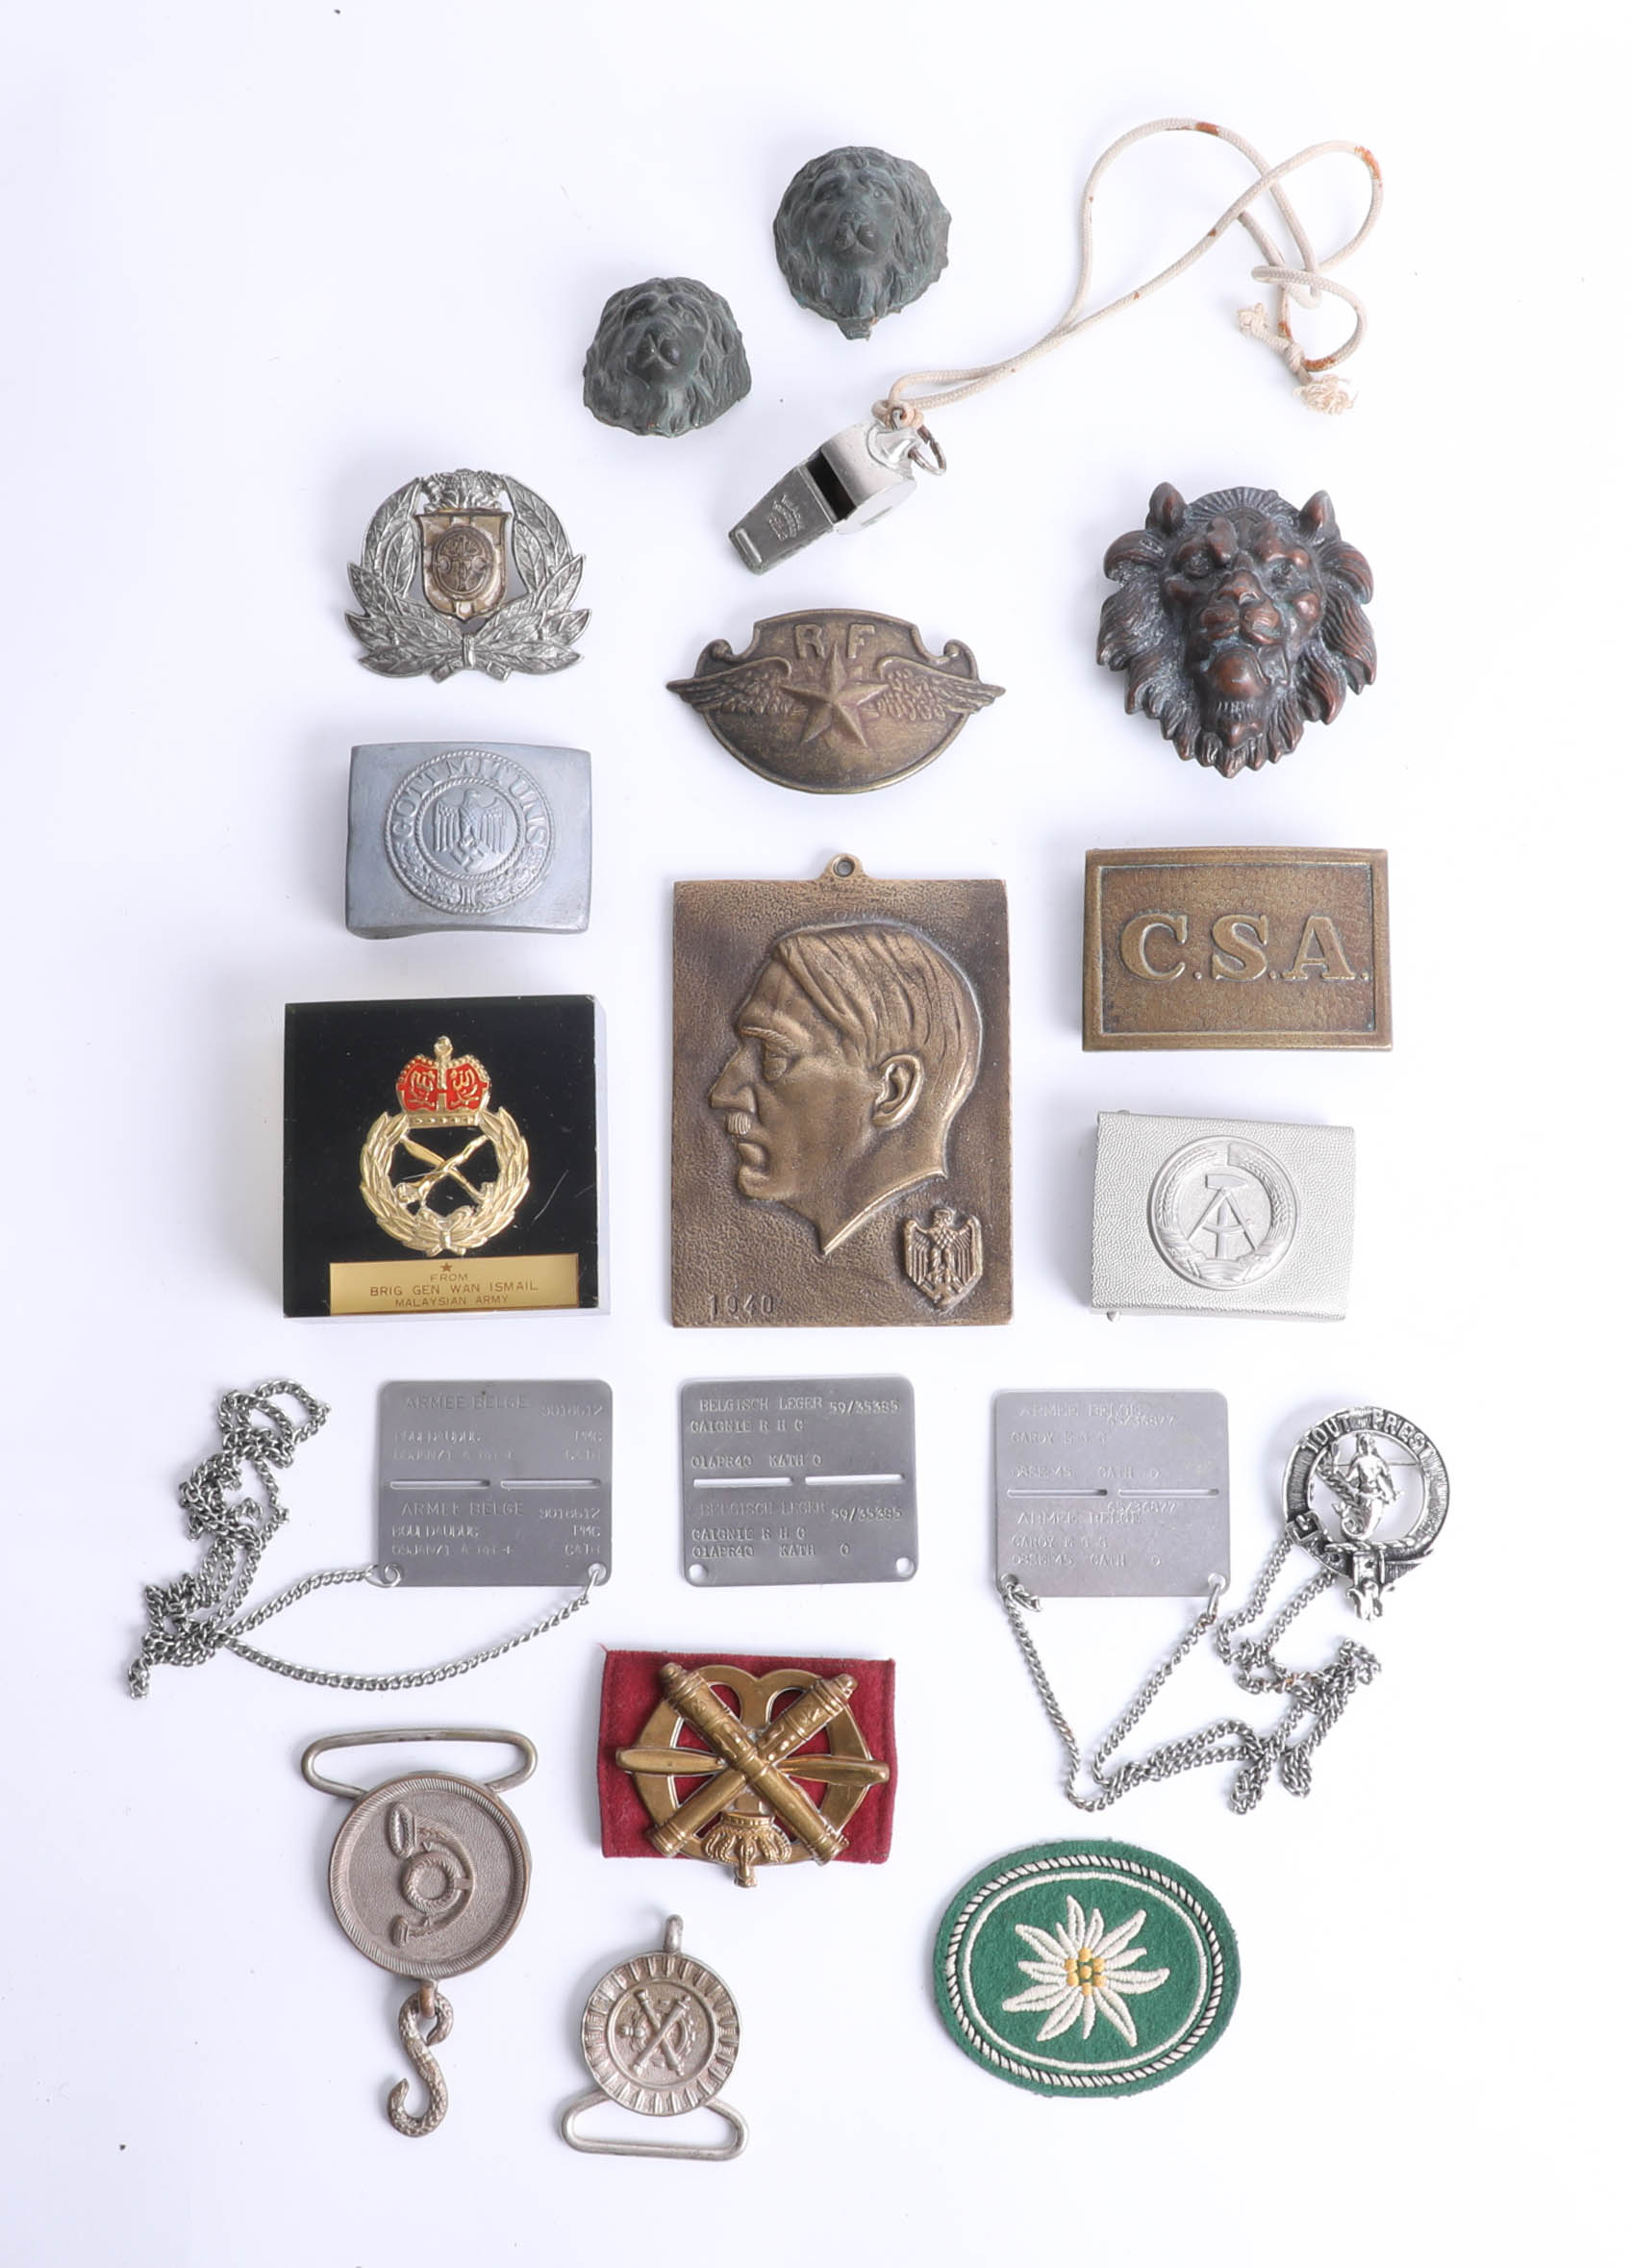 Lot 042 - A collection of various military and other badges, buckles and interesting objects. Part of the Late